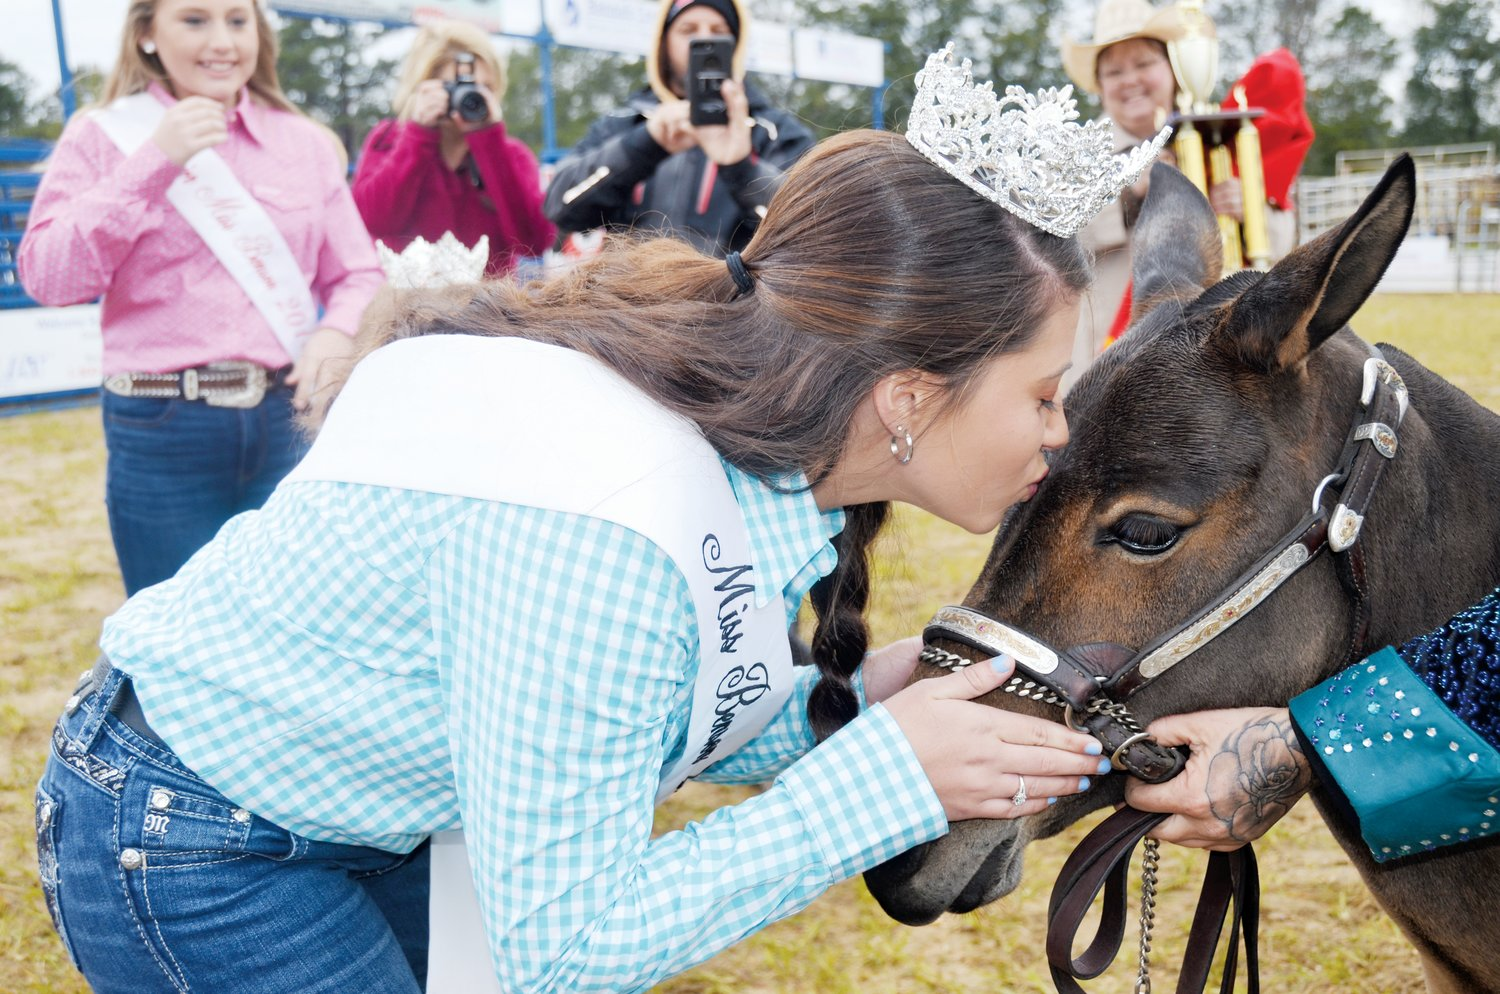 One of the many traditions of Benson Mule Days is kissing the winning grand champion mule by the reigning Miss Benson. Last year's winner, the first mini-mule to claim the top prize, Ellie - She's A Pistol, receives her kiss from Charli Rosenburg.